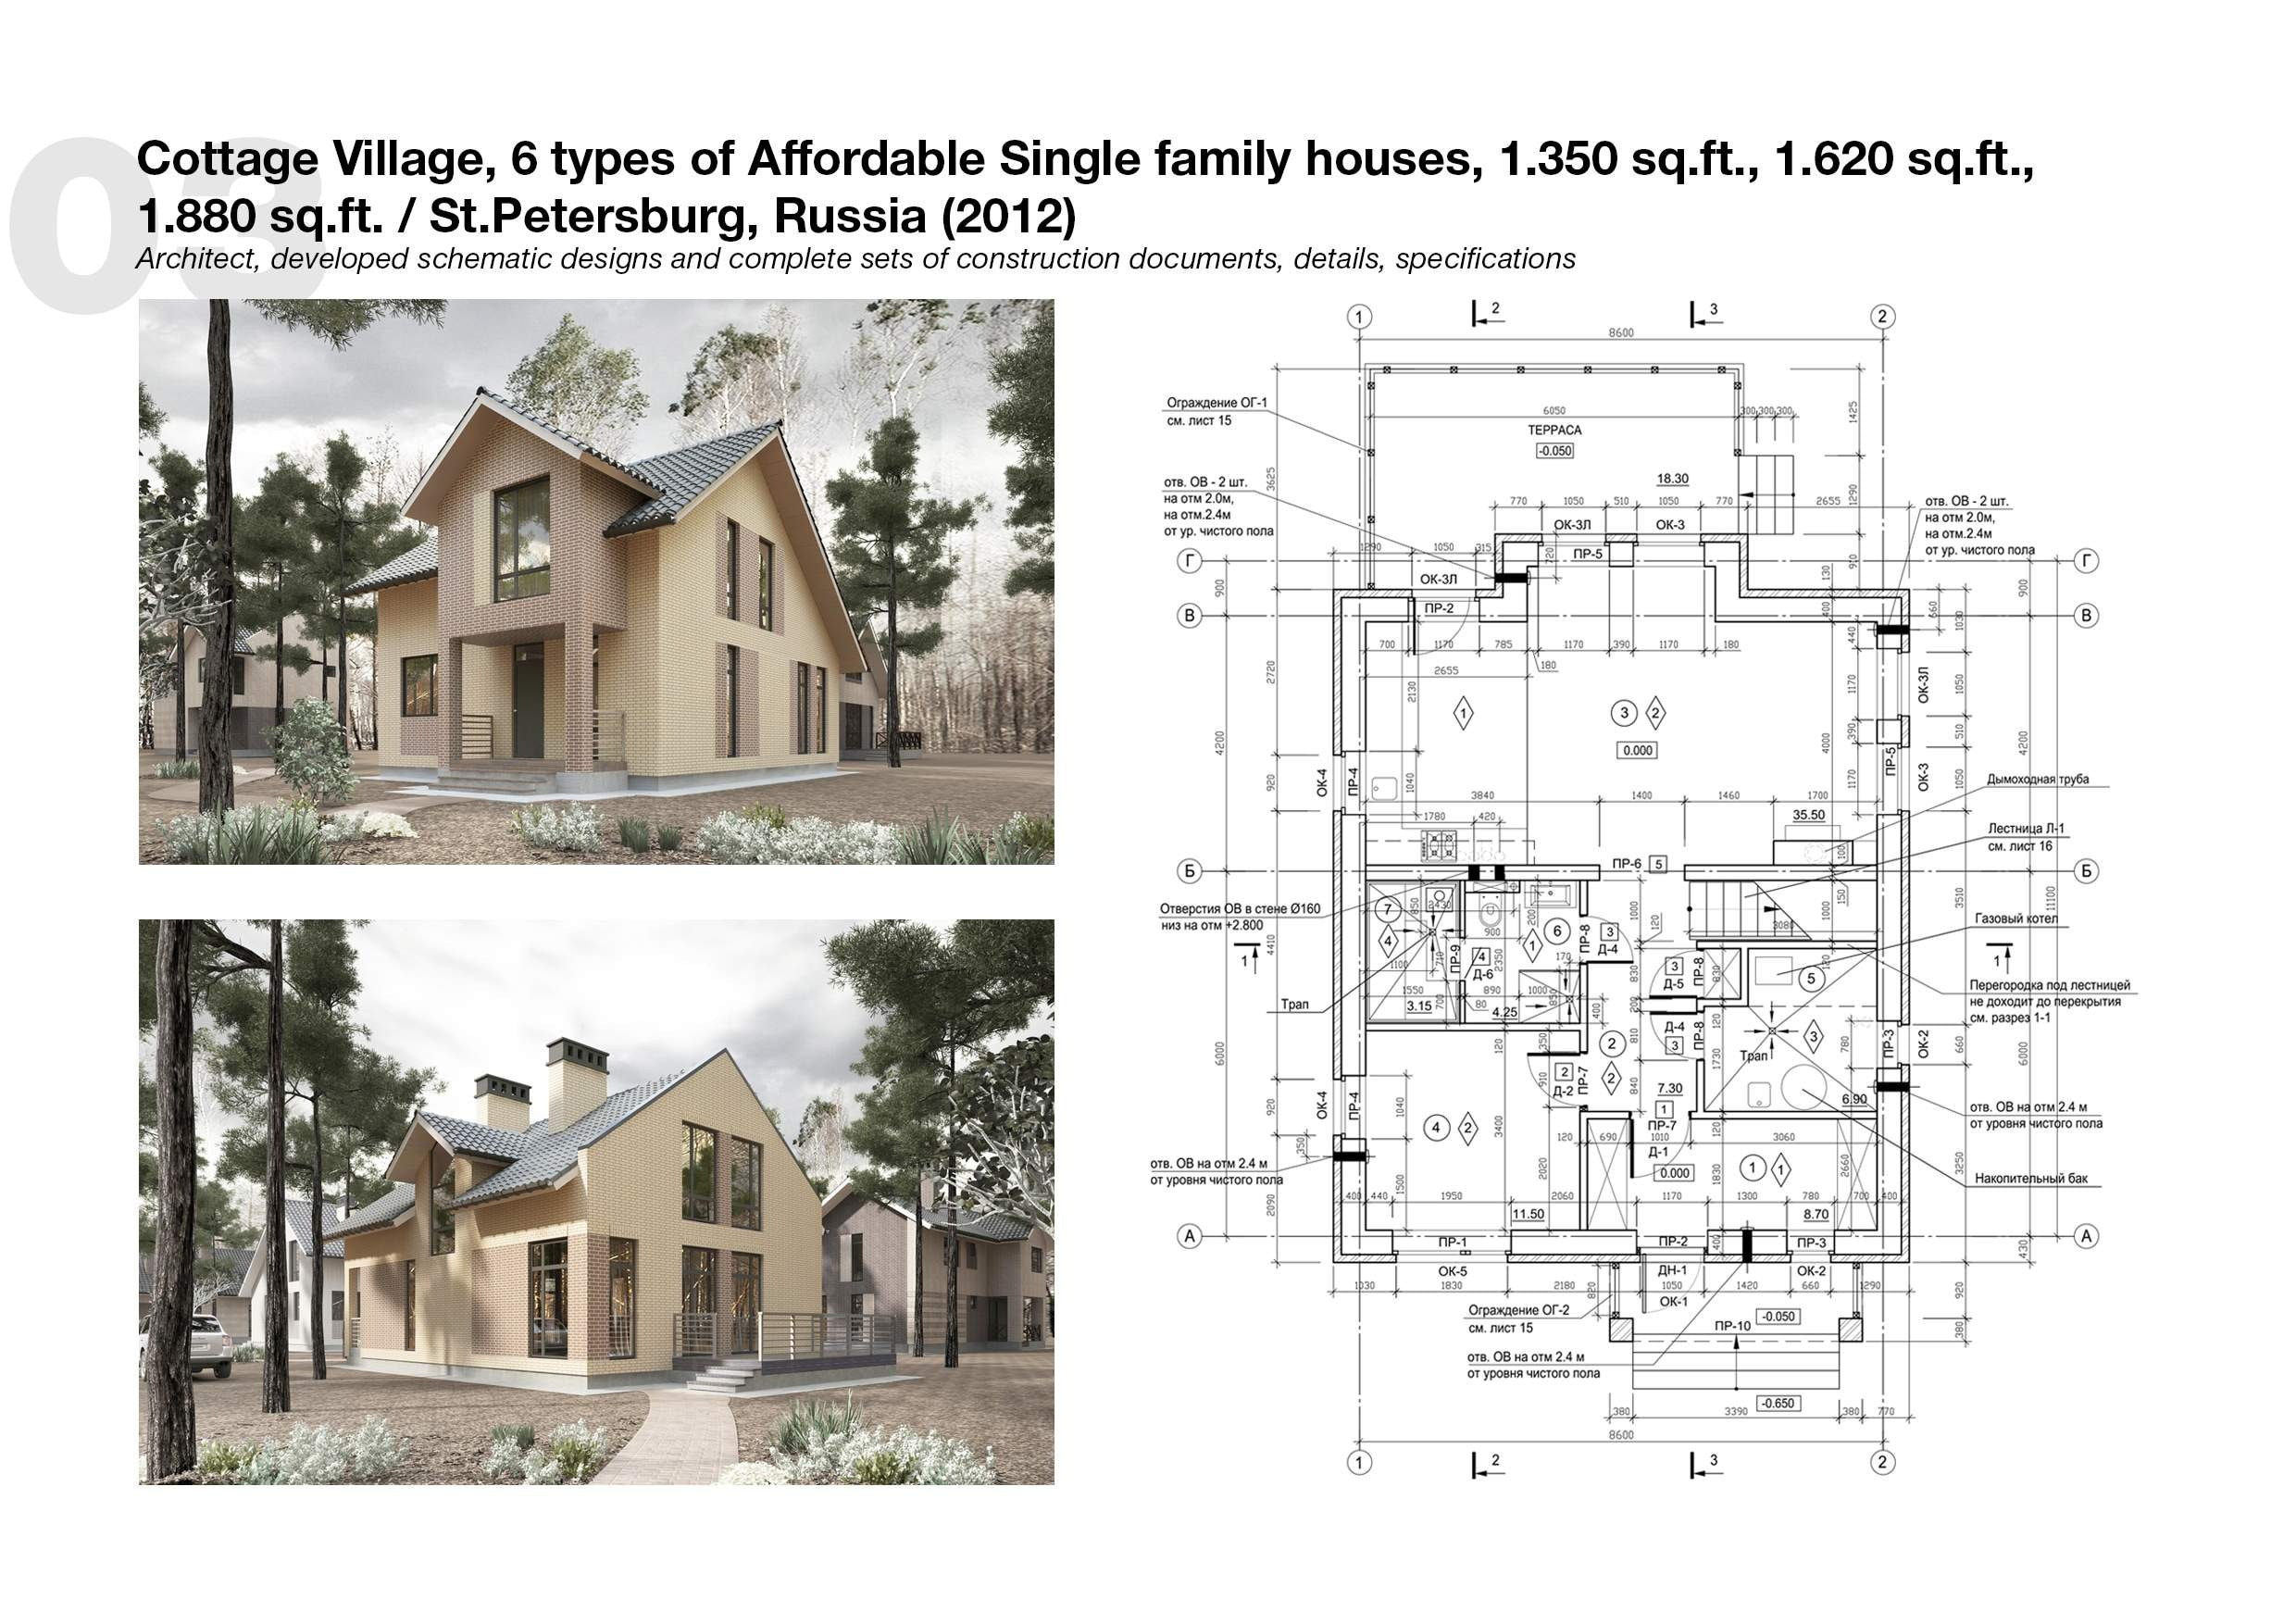 My Role: Architect, Developed Schematic Designs And Complete Sets Of  Construction Documents, Details And Specifications